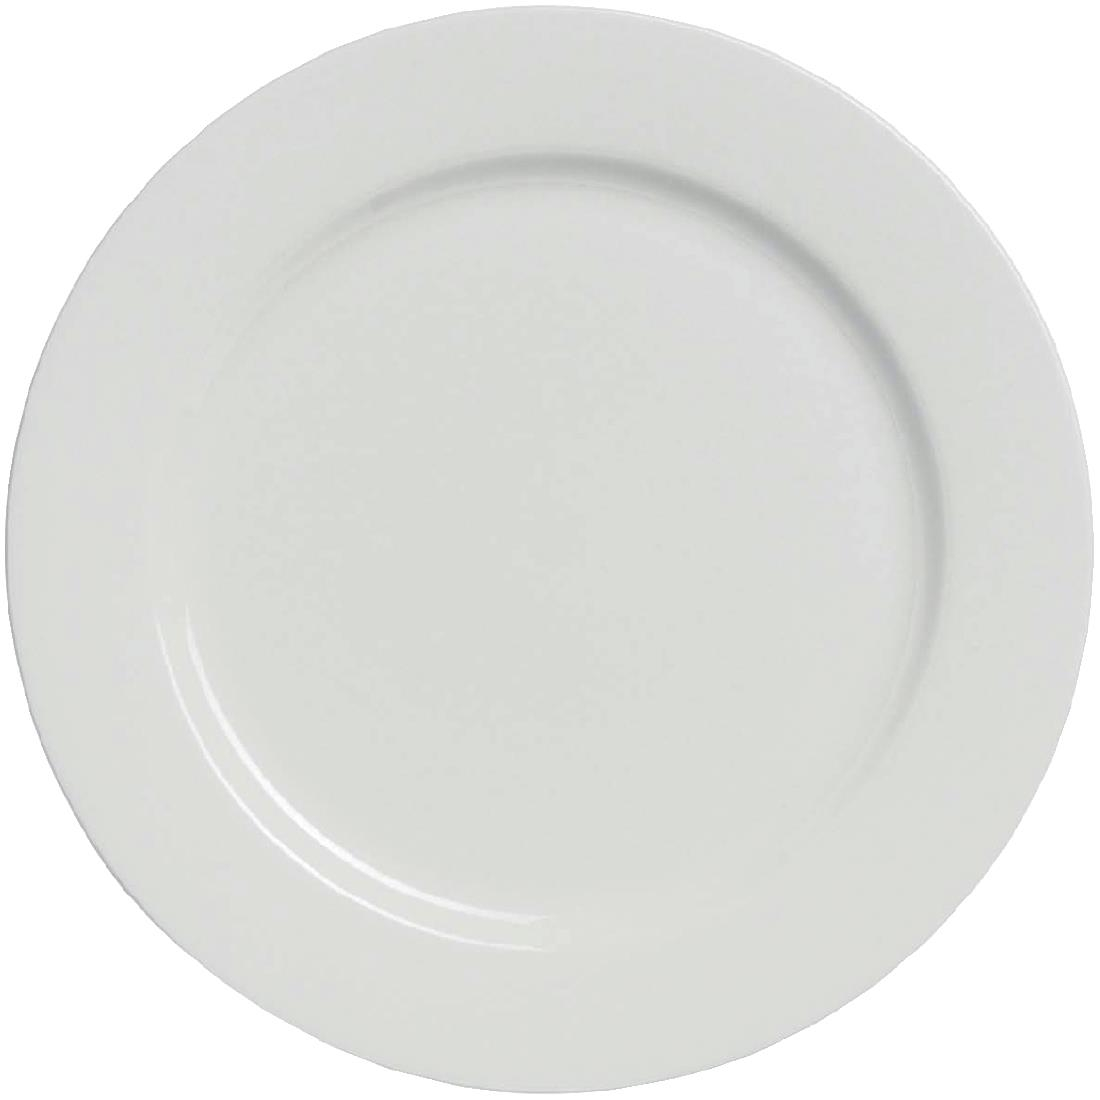 Image of Elia Glacier Fine China Plates 270mm (Pack of 6) Pack of 6